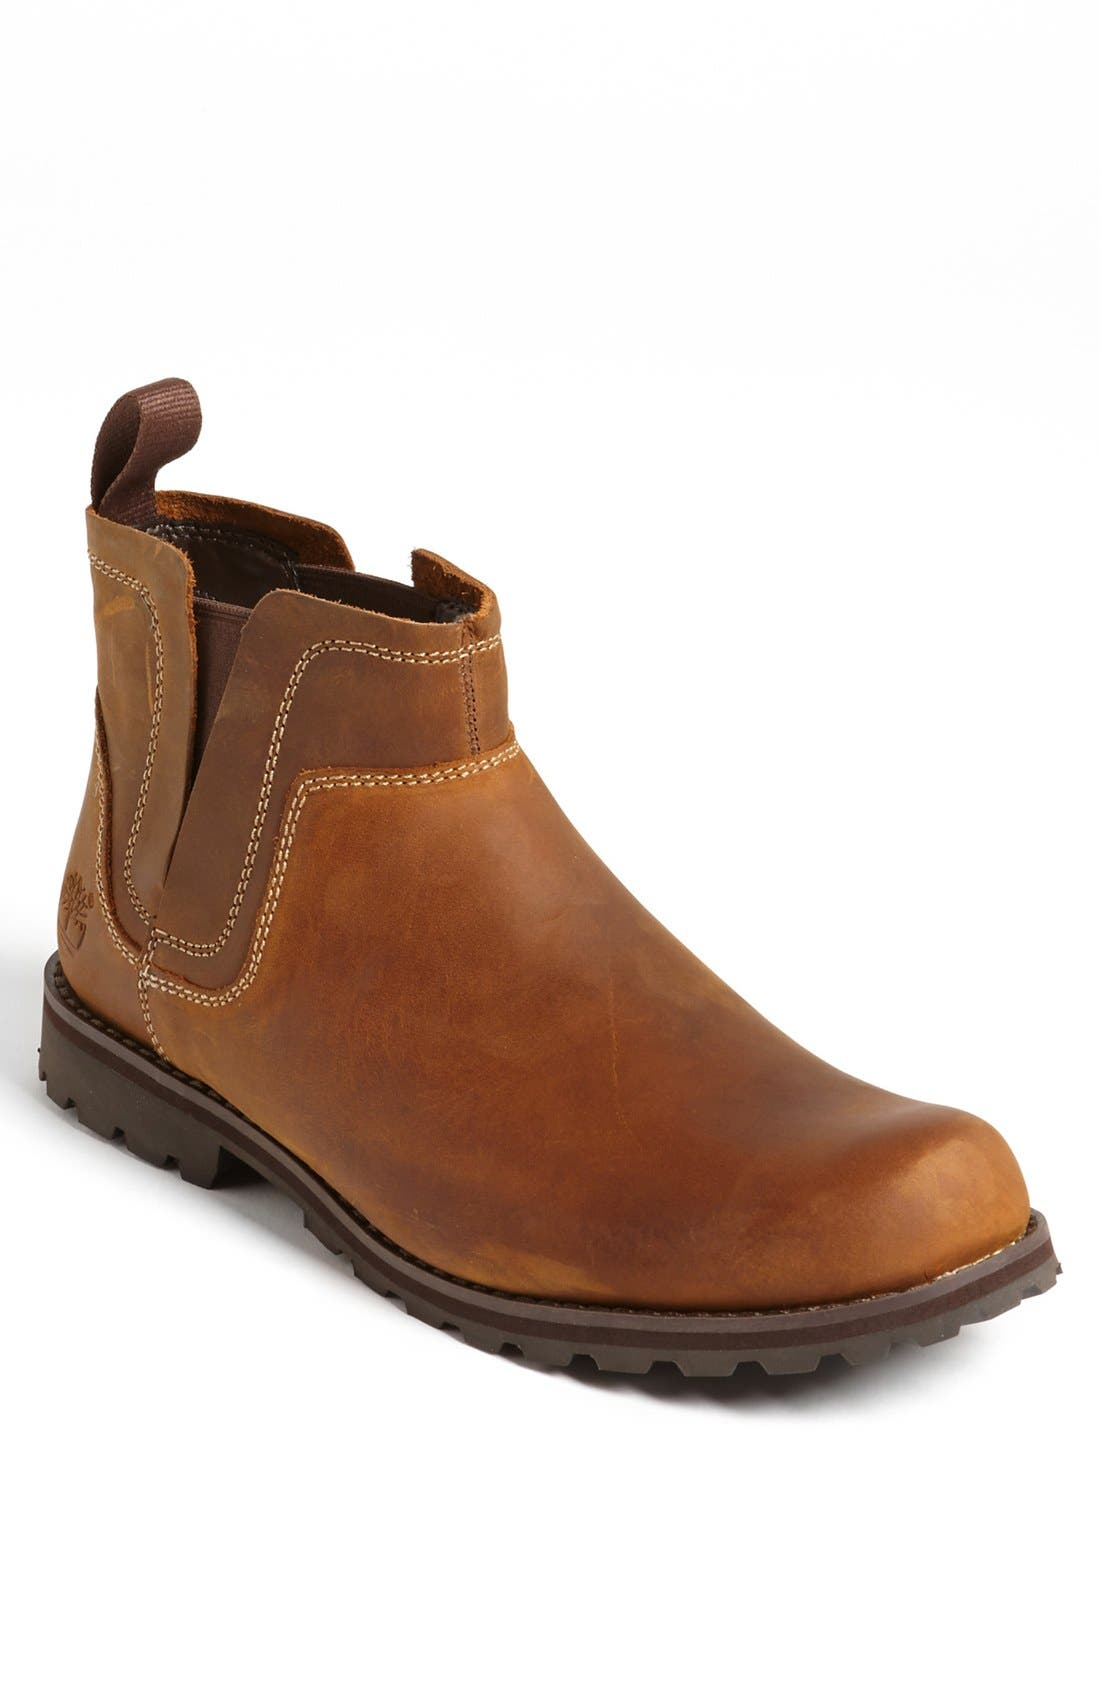 Alternate Image 1 Selected - Timberland Earthkeepers® 'Original' Chelsea Boot